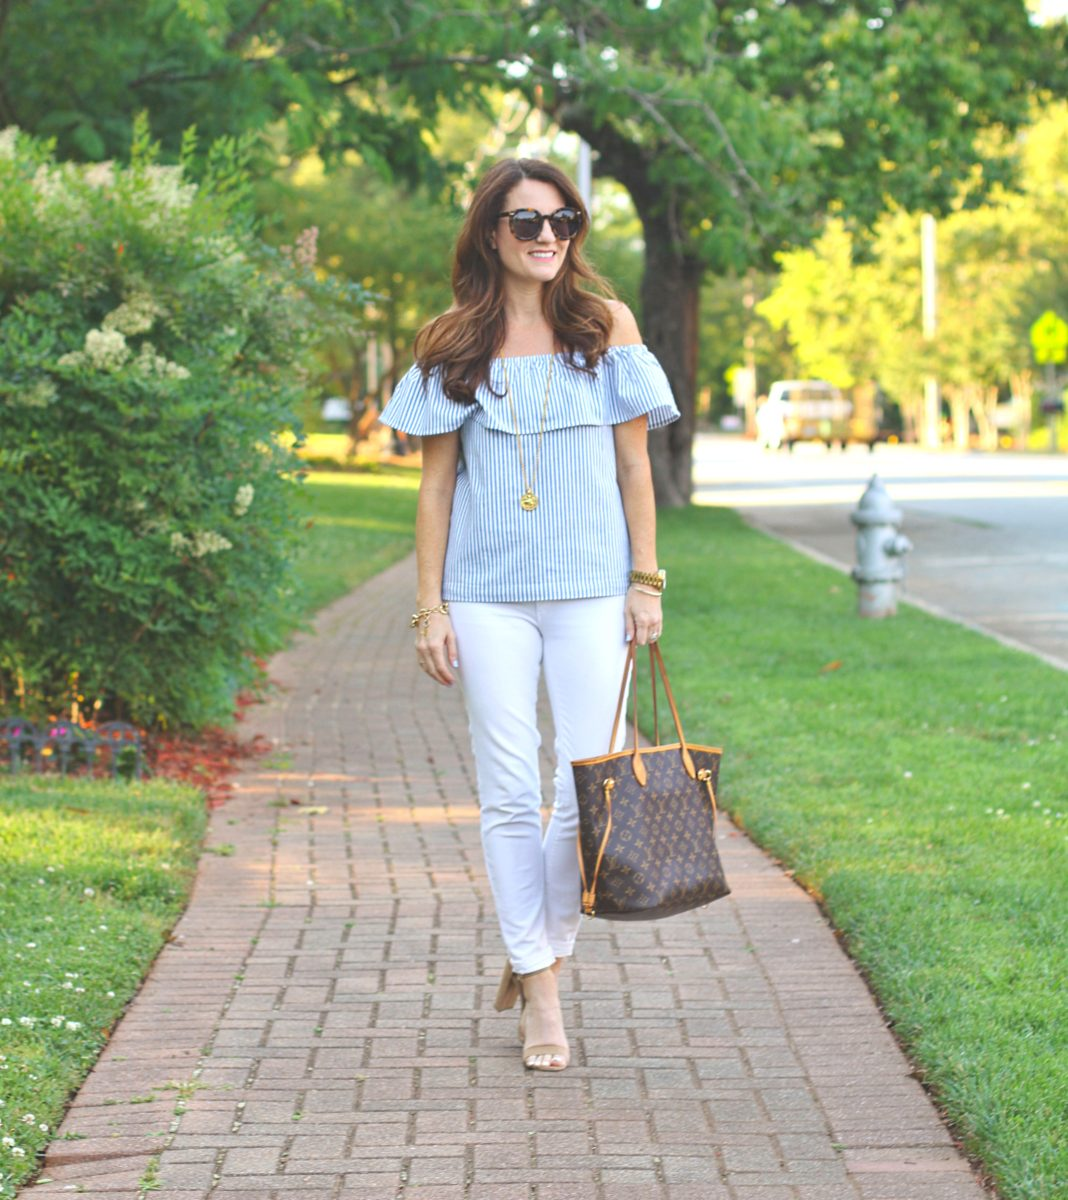 Cute Summer style for women via Peaches In A Pod blog.